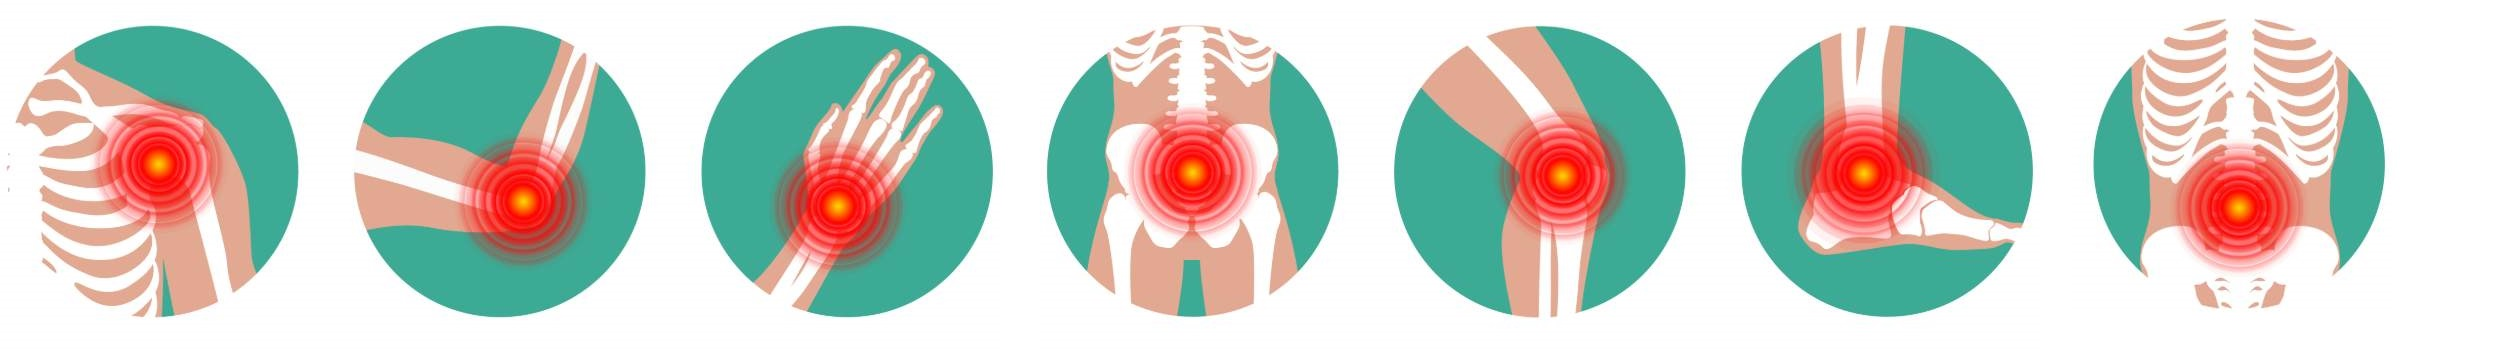 Icons showing different body parts with bone issues